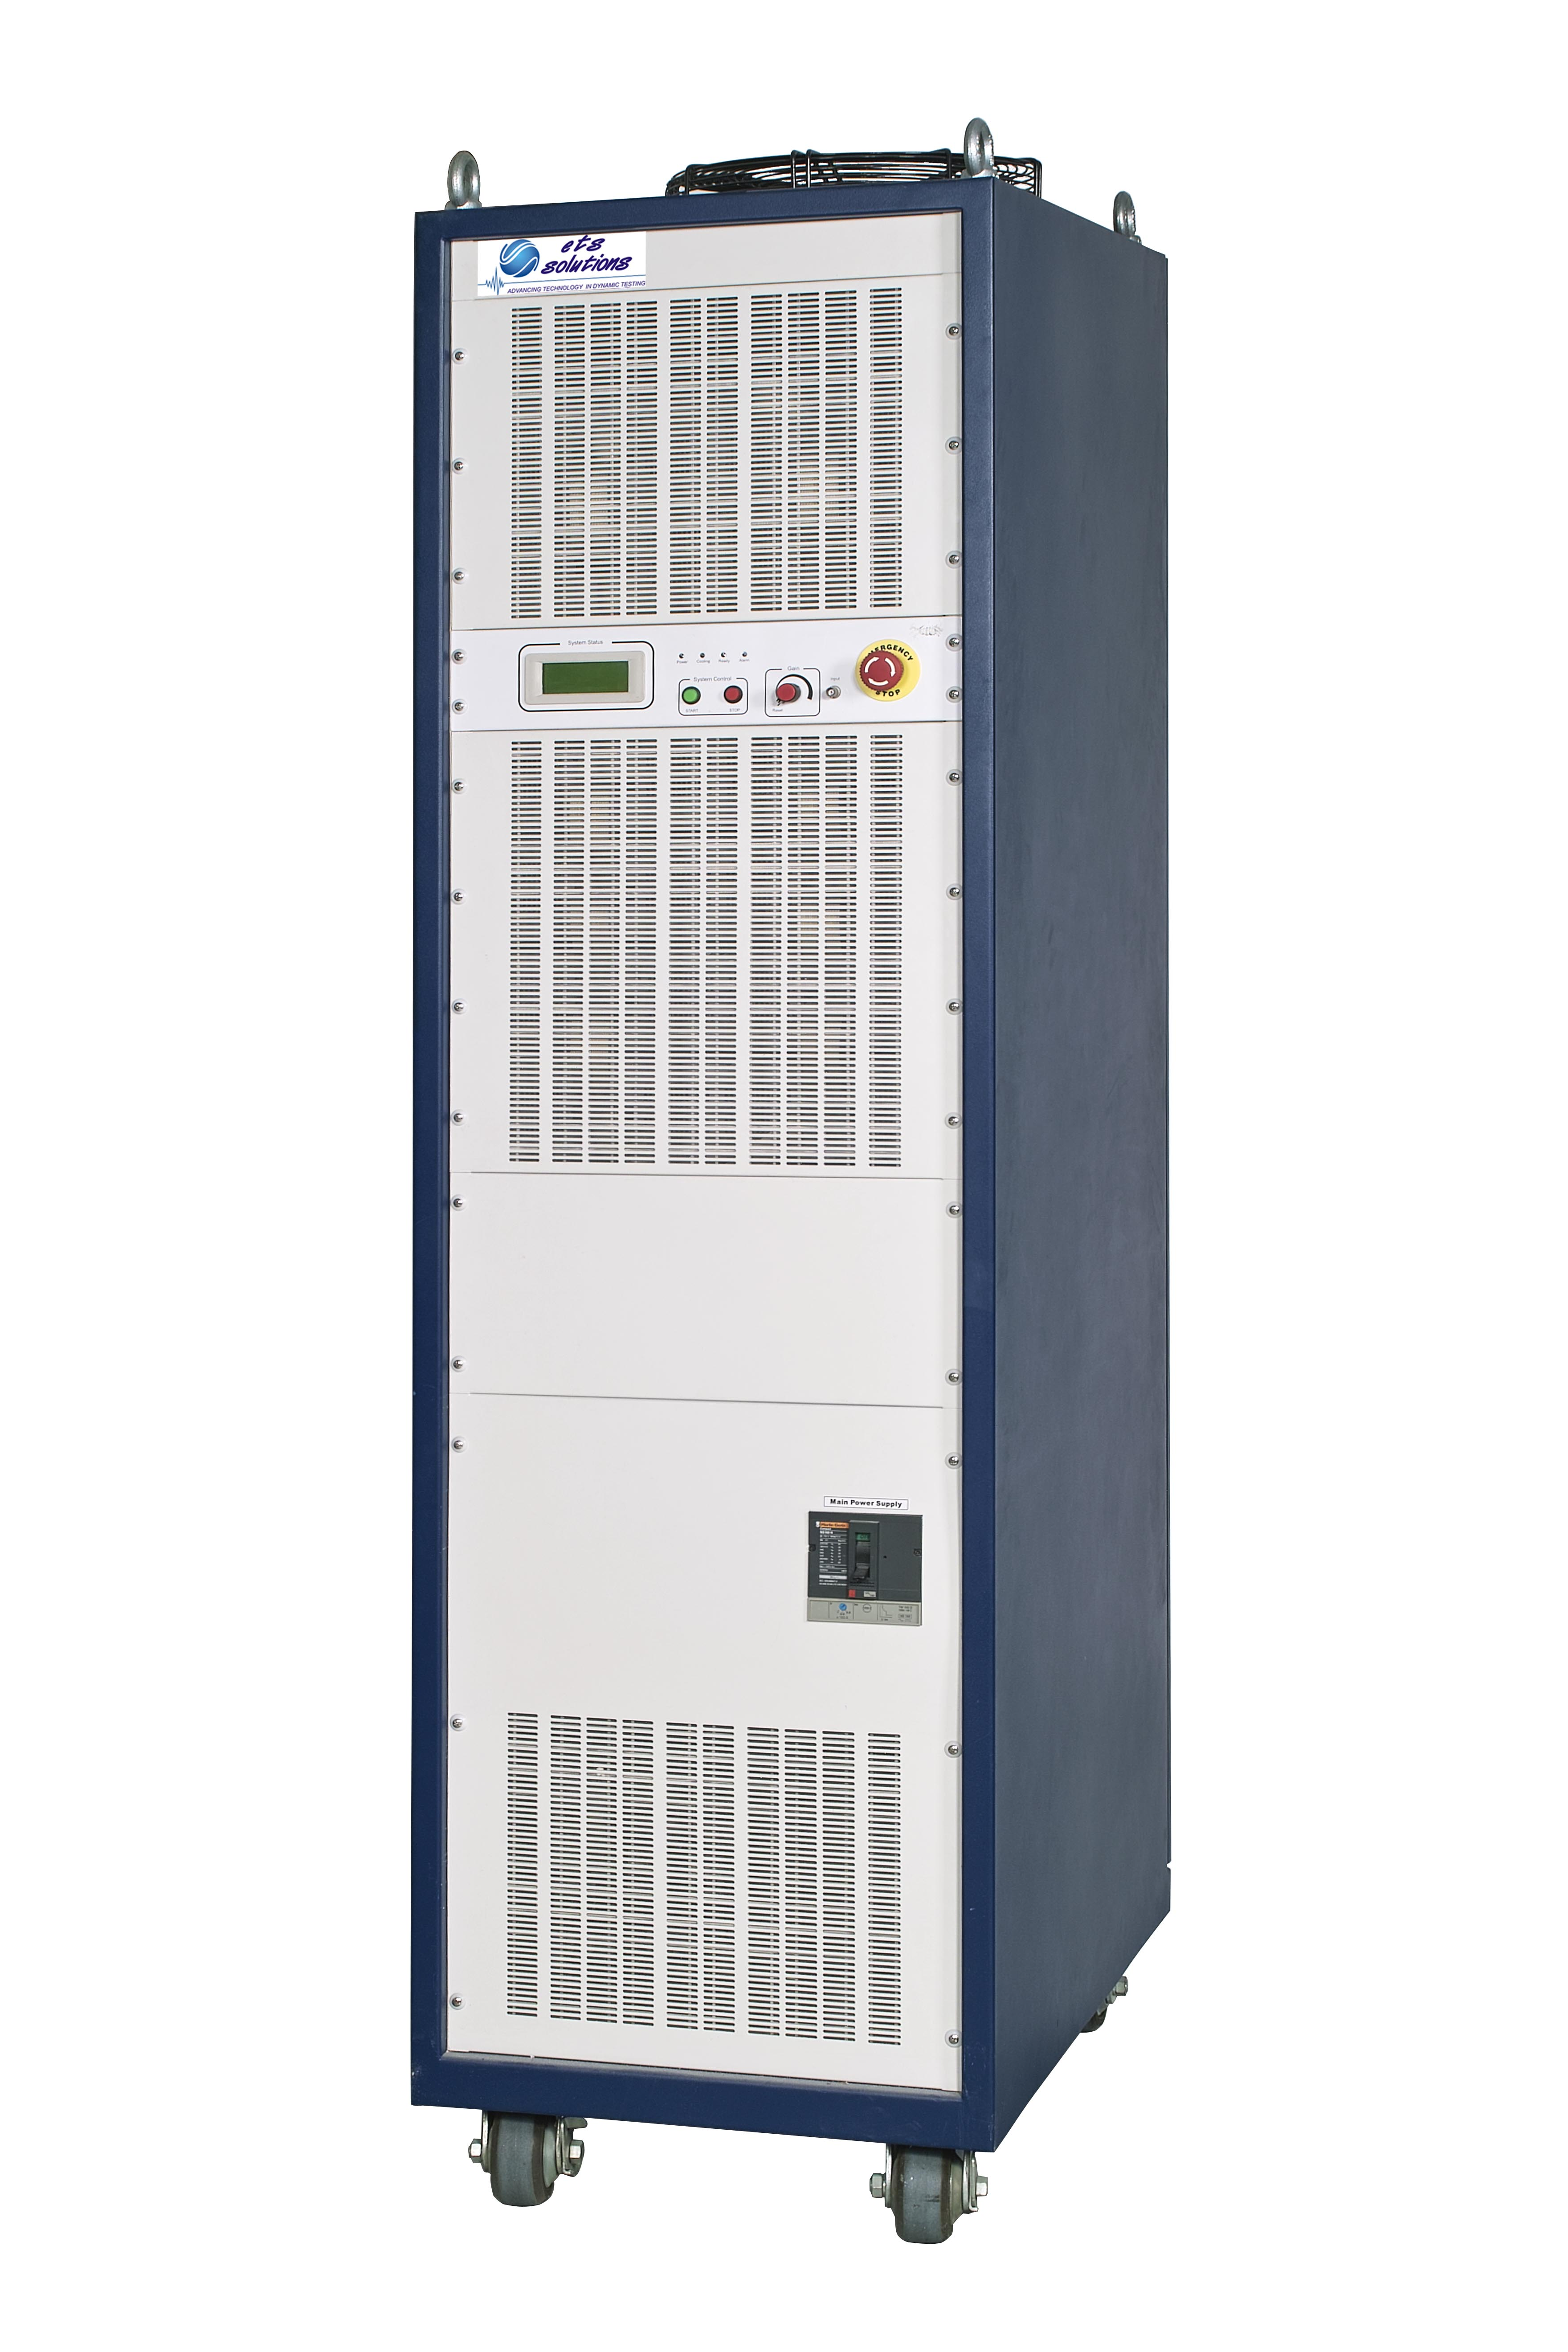 Cabinets: 1, Max Power Output: 49kVA to 84kVA, Max Output Voltage: 120V, Max Output Current: 700A